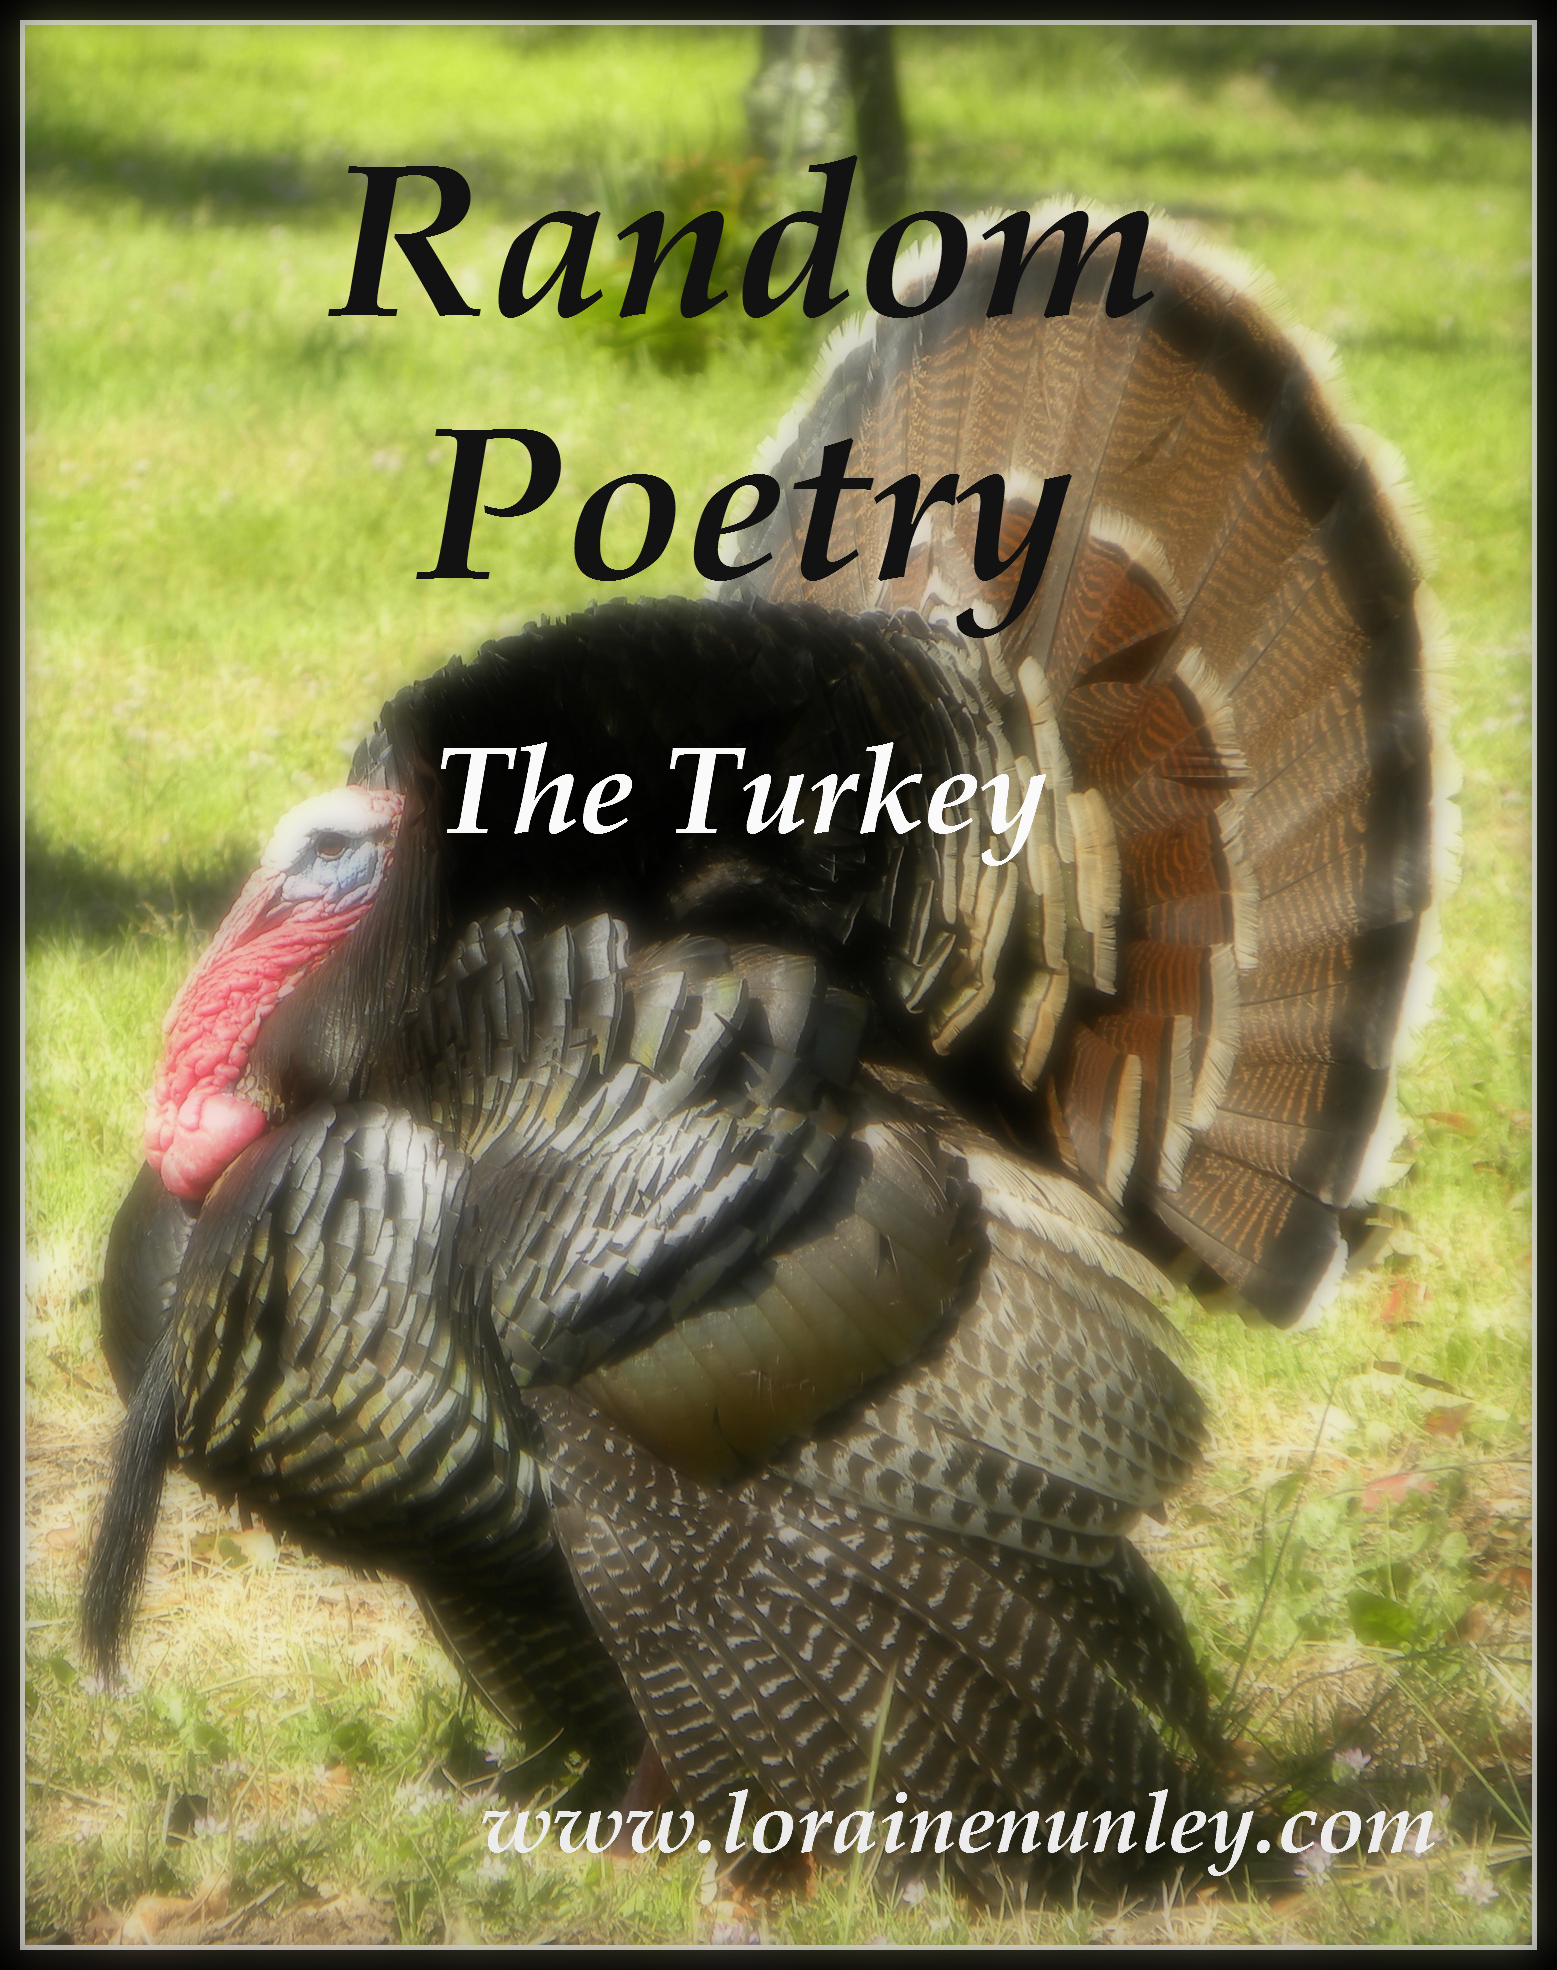 The Turkey (Random Poetry)